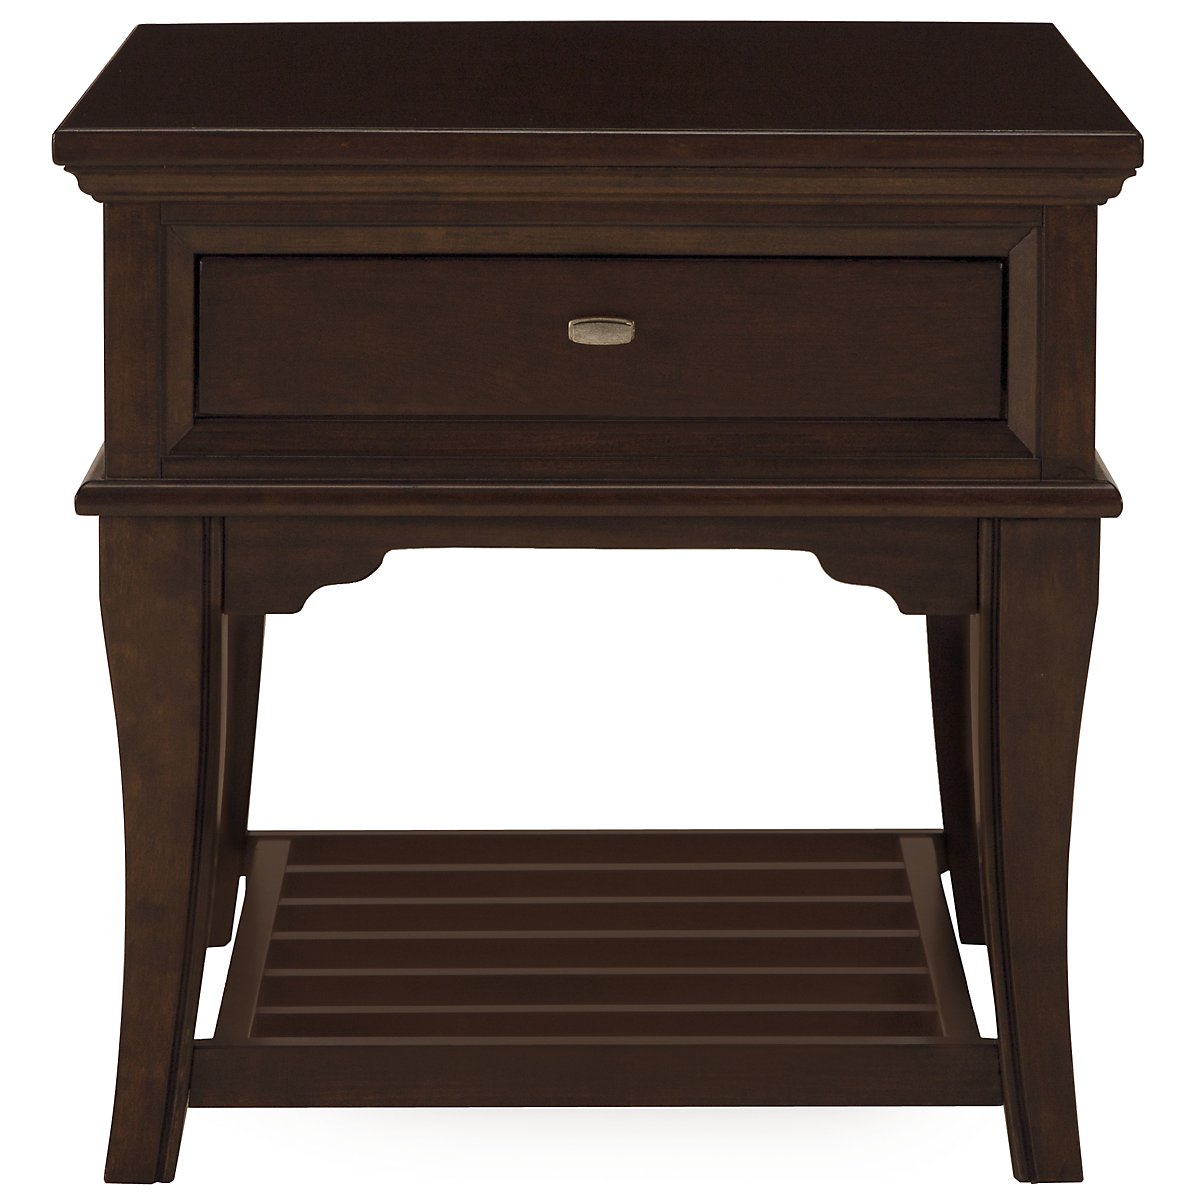 Canyon Dark Tone Wood Rectangular End Table